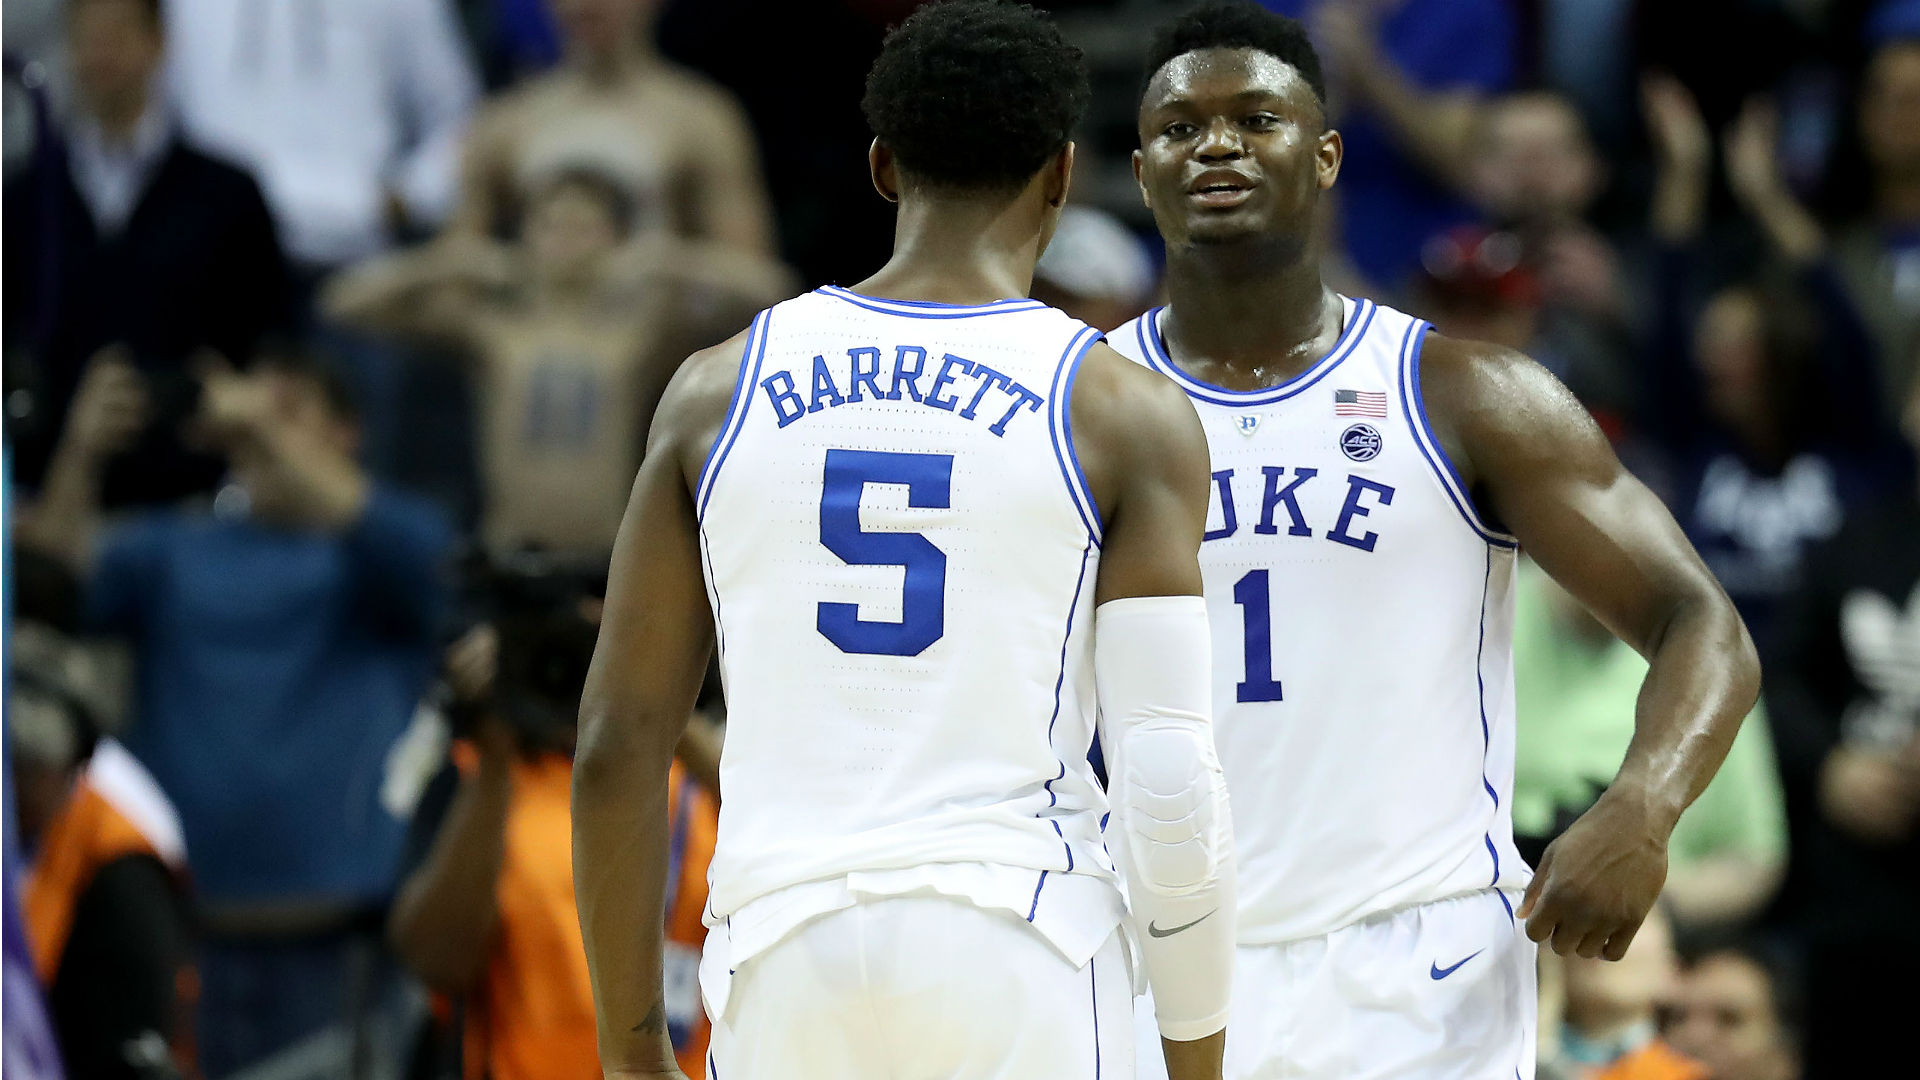 March Madness 2019: 7 key stats from Duke's ACC Tournament run